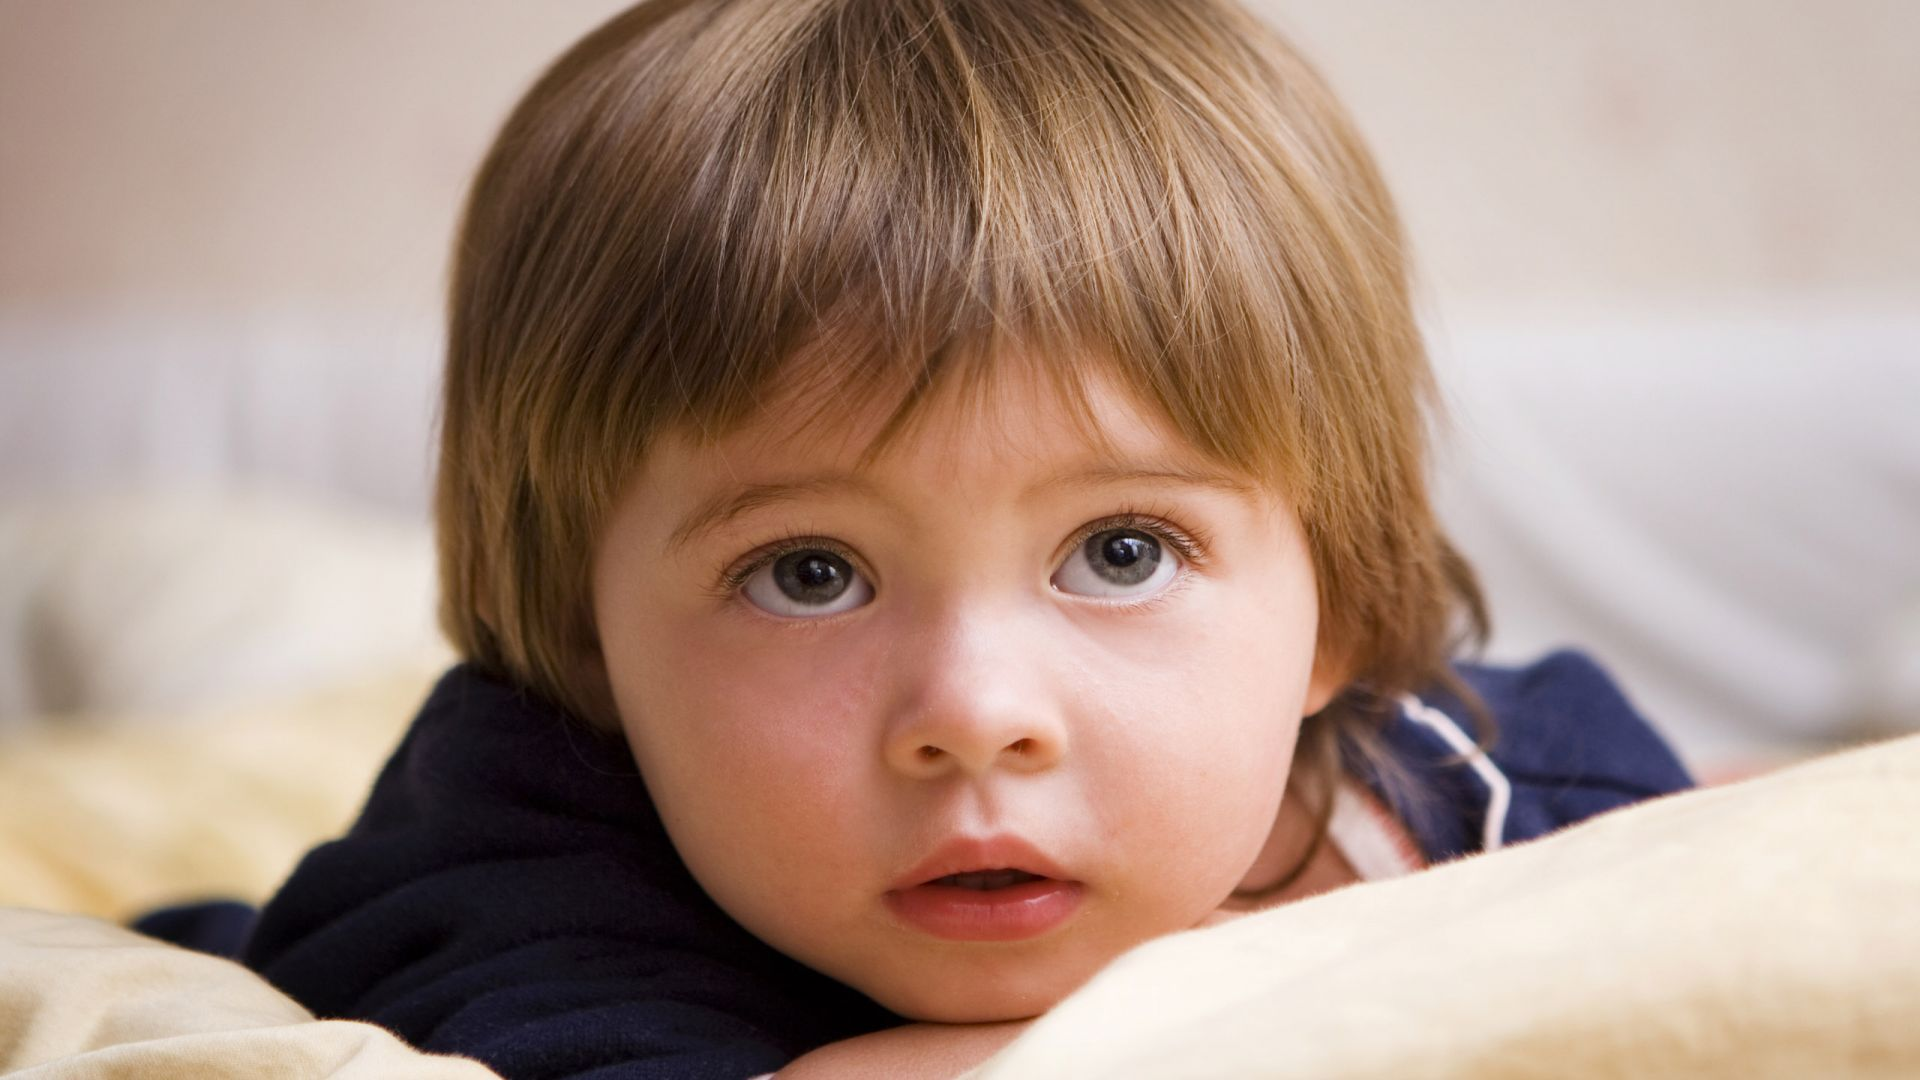 cute funny baby pics HD wallpapers Pinterest Cute funny HD